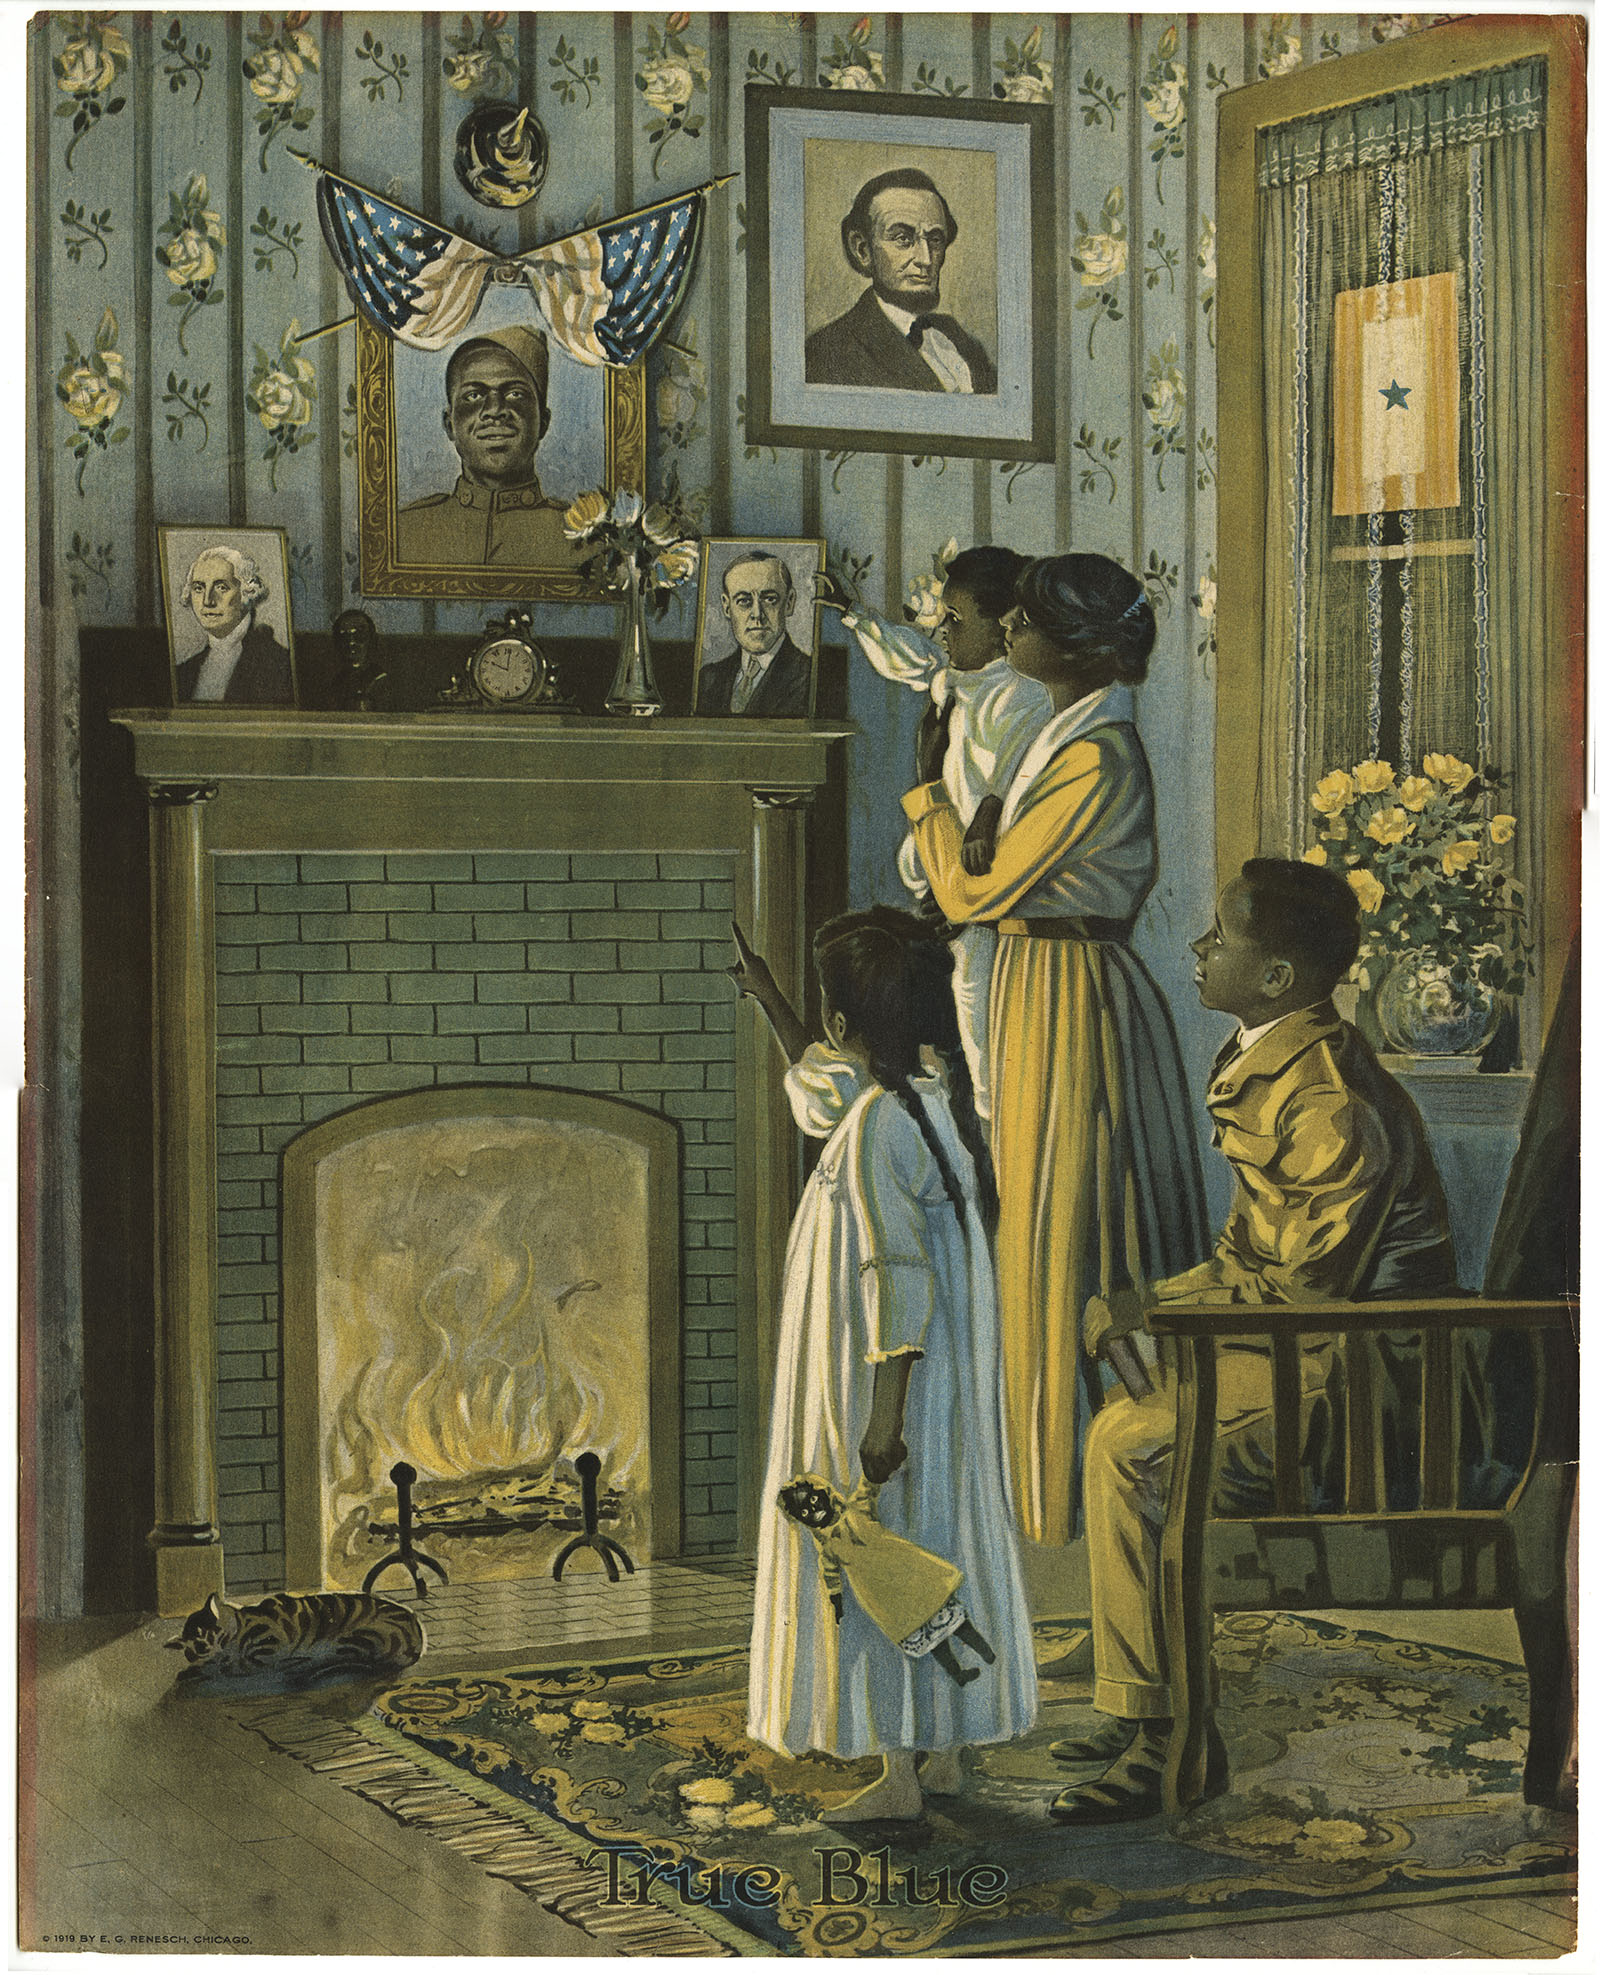 True Blue (Chicago, 1919). Color lithograph.